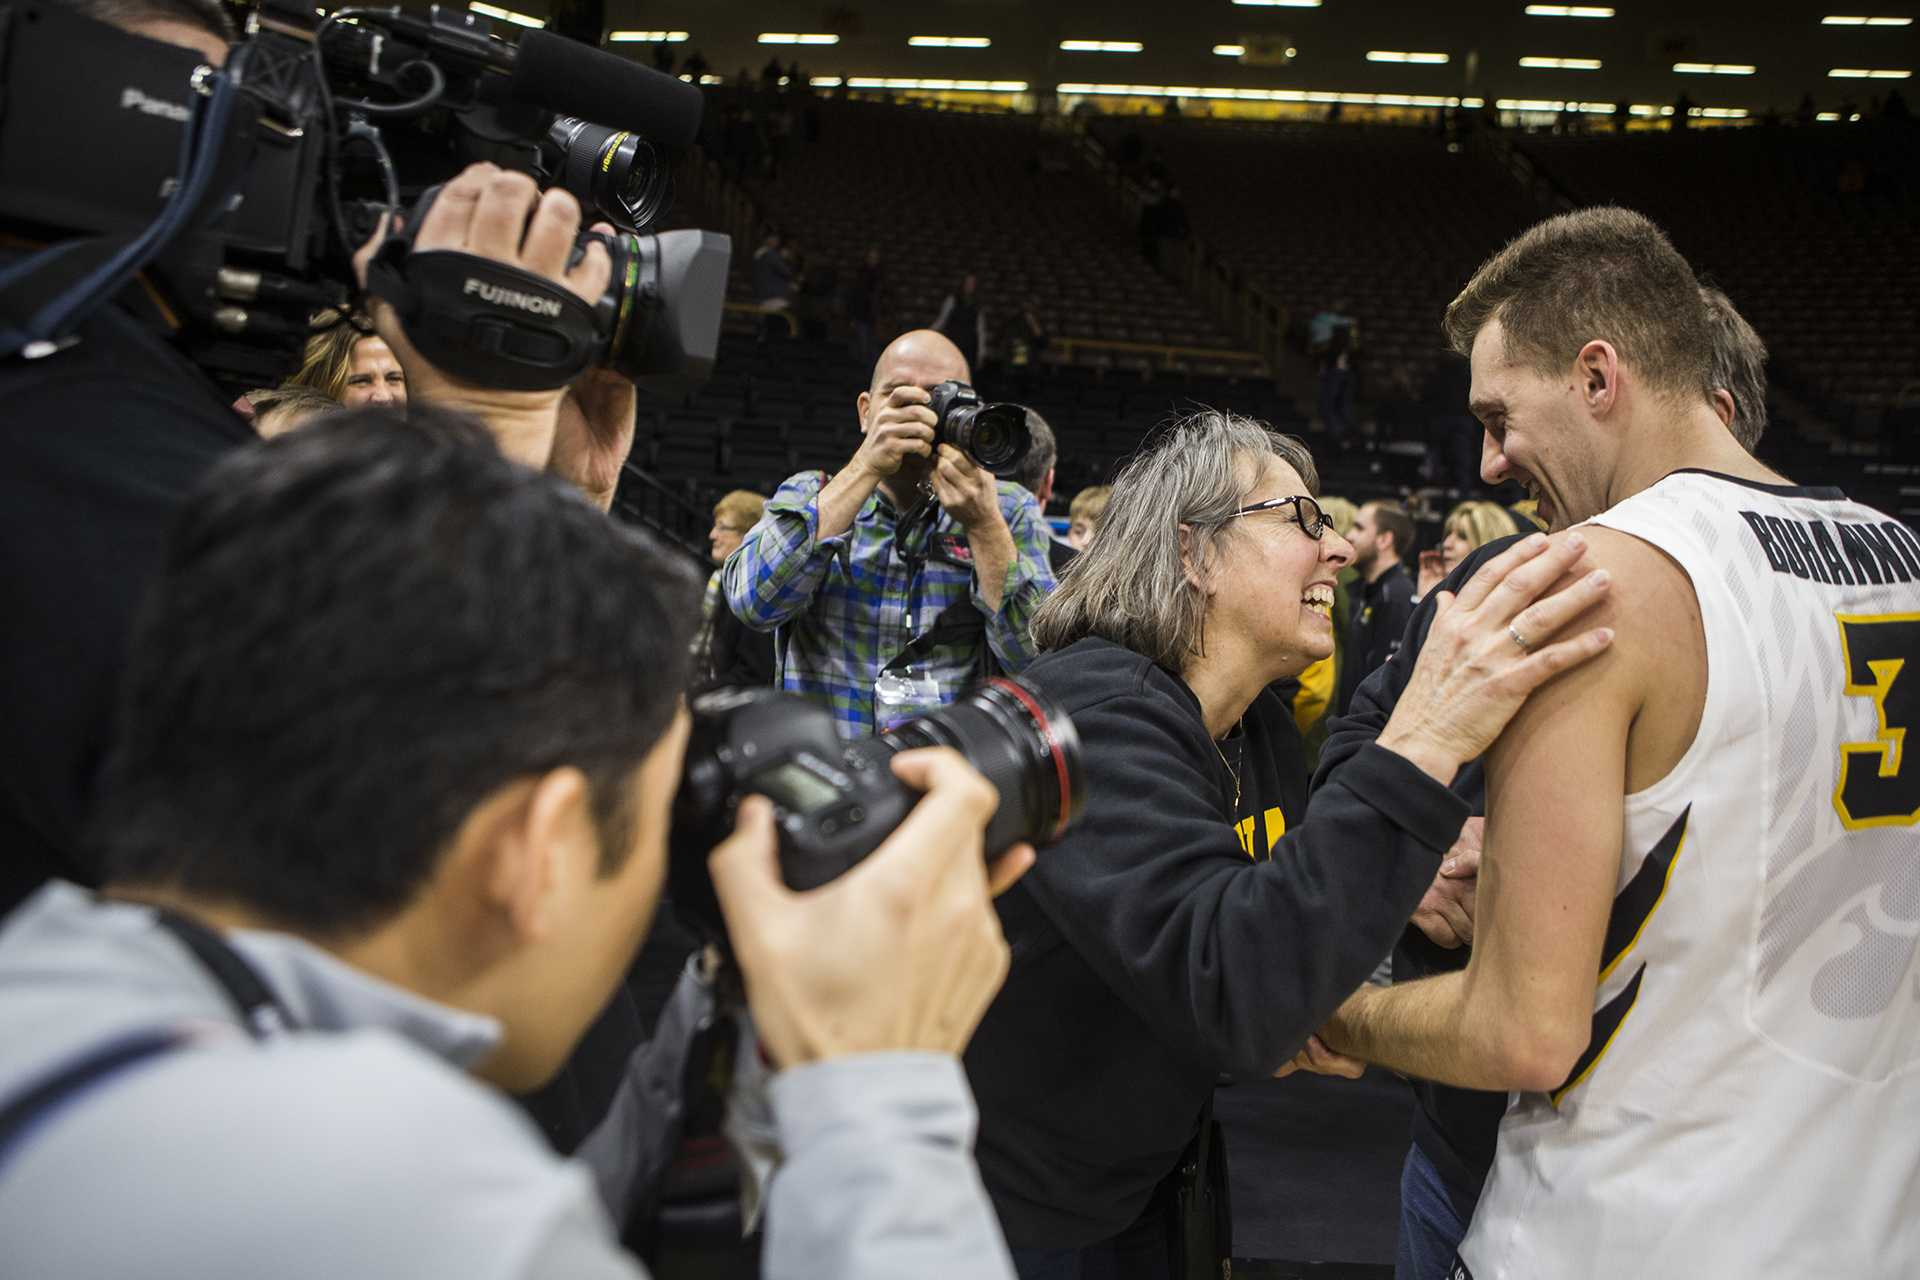 Iowa fans congratulate Jordan Bohannon (3) after the Senior Day men's basketball game between Iowa and Northwestern at Carver-Hawkeye Arena on Sunday, Feb. 25, 2018. The Hawkeyes defeated the Wildcats 77-70. (Ben Allan Smith/The Daily Iowan)